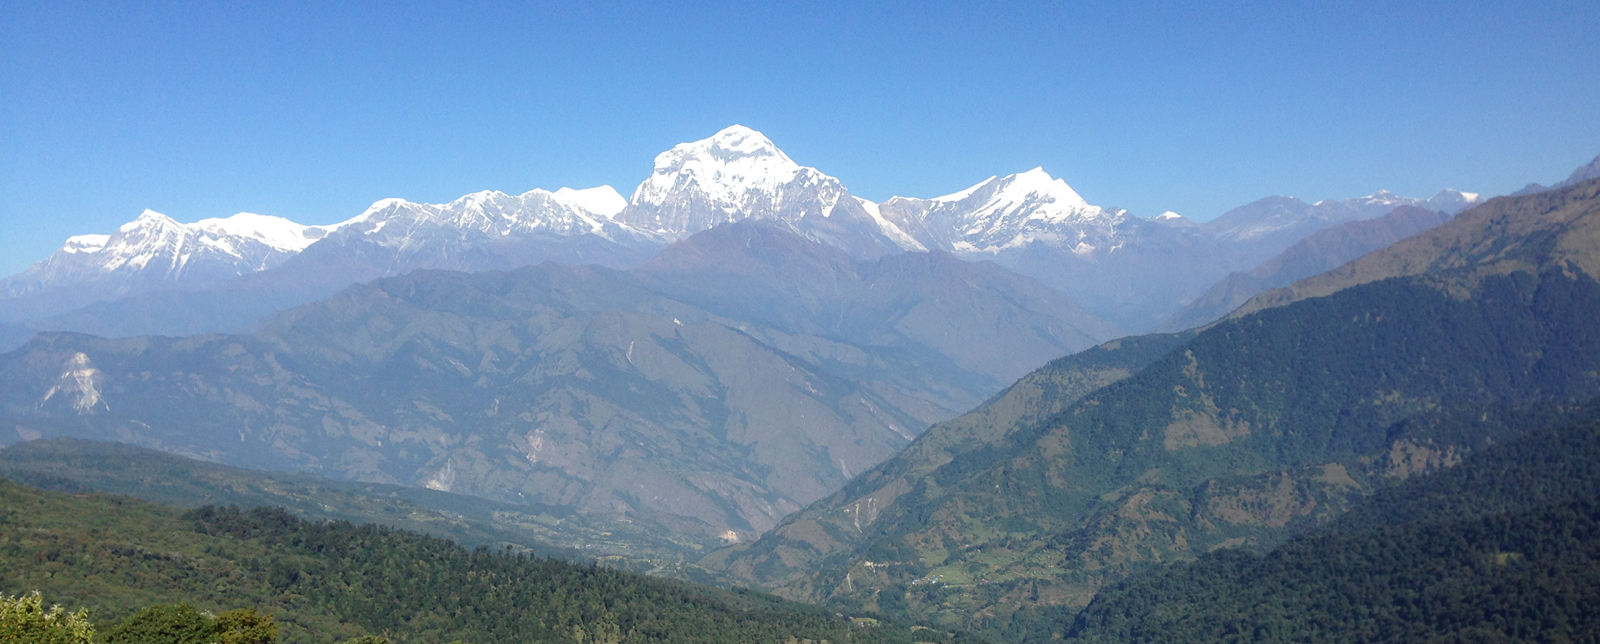 Scenic Annapurna range from Poonhill